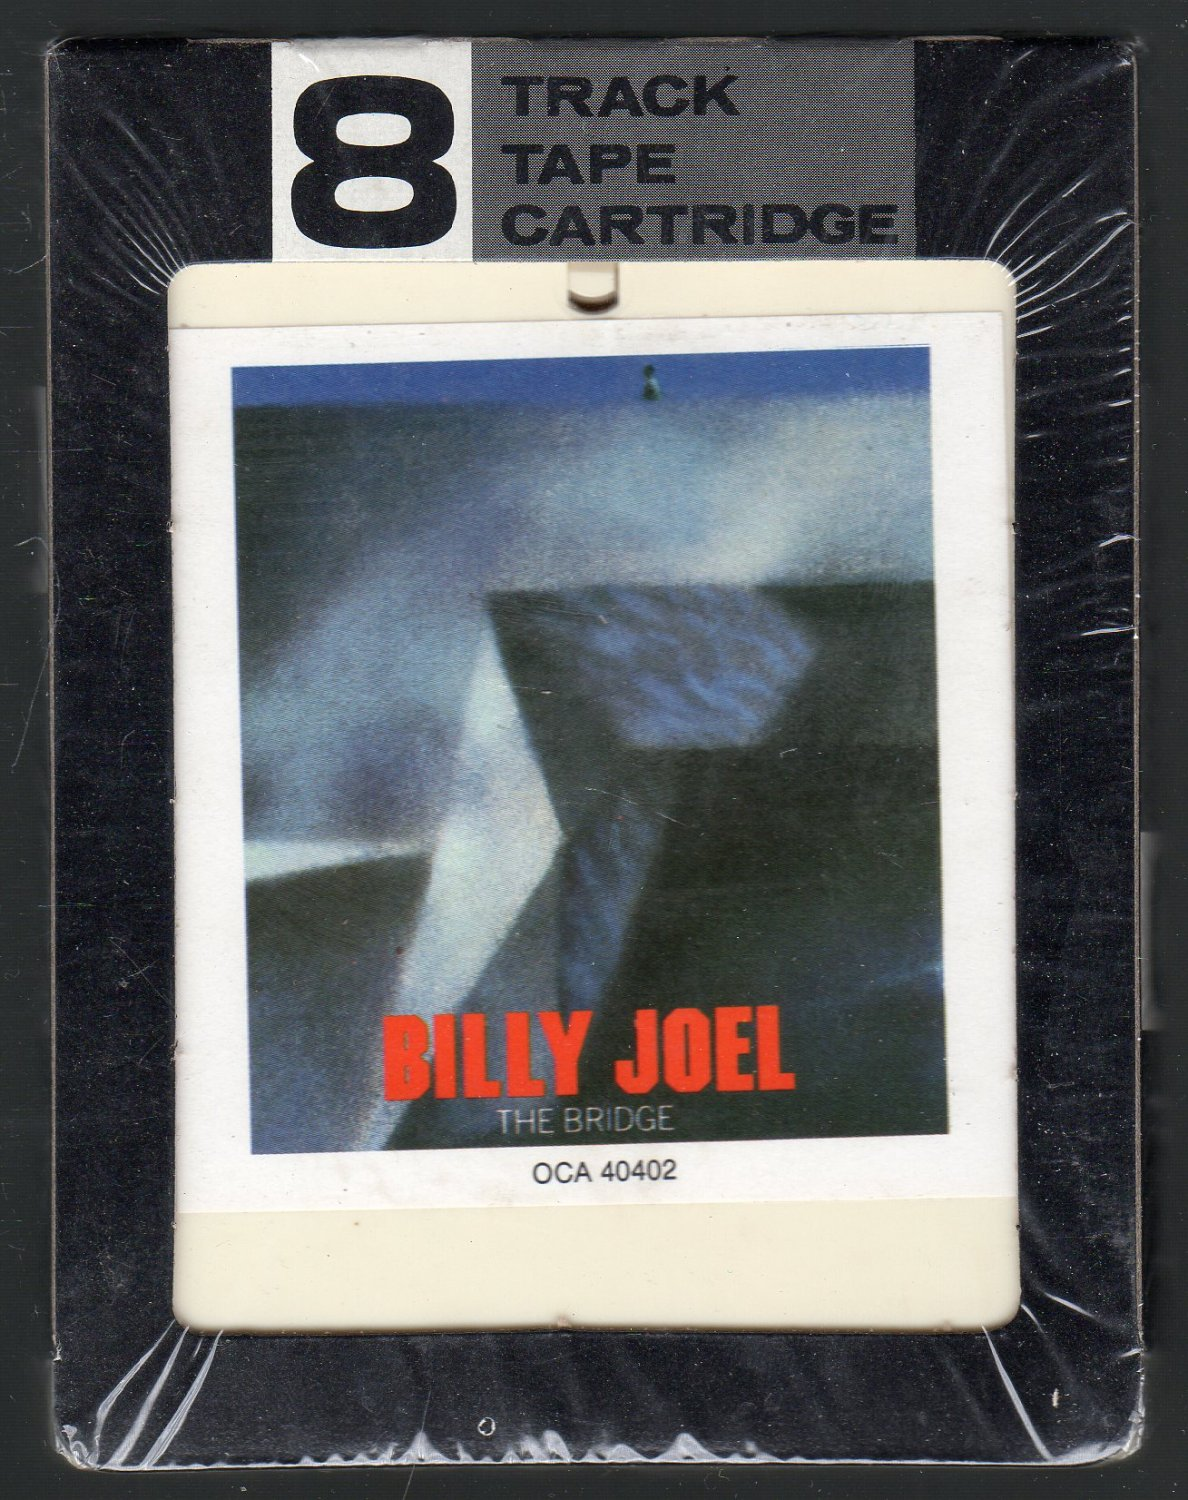 Billy Joel - The Bridge 1986 SOLD Chelsea Sealed 8-track tape